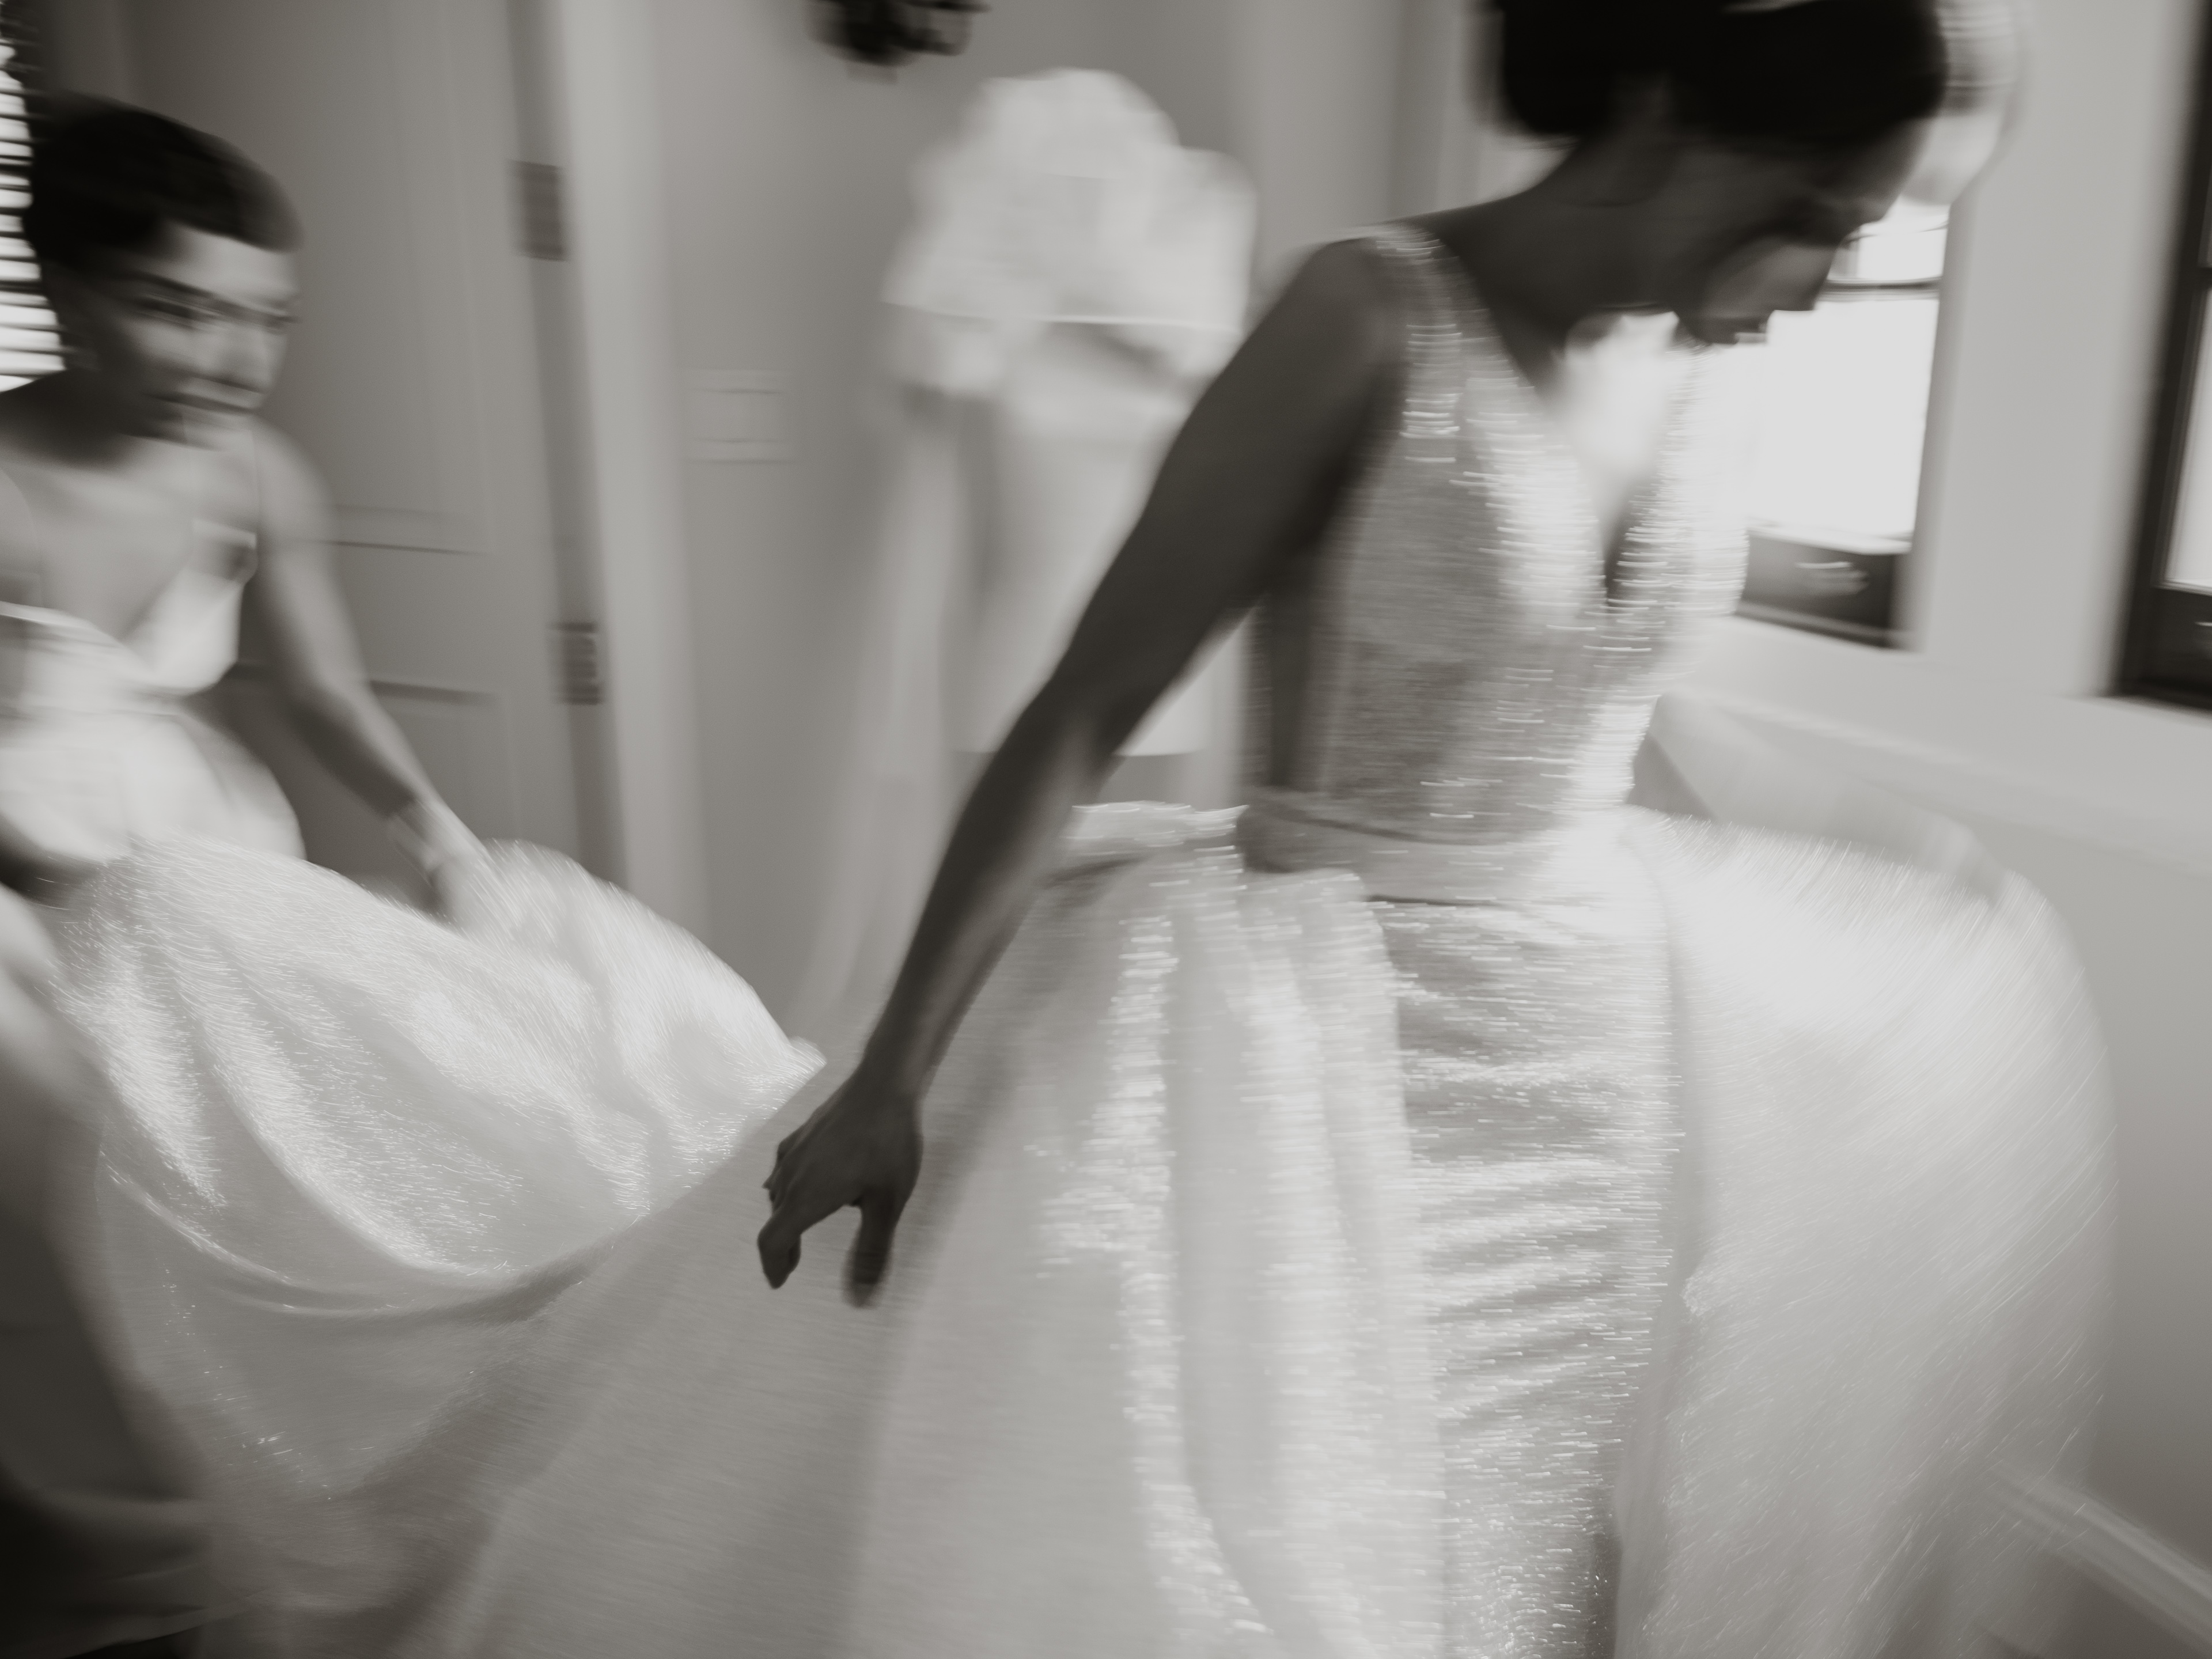 Bride enters with train trailing - photo by Joel and Justyna